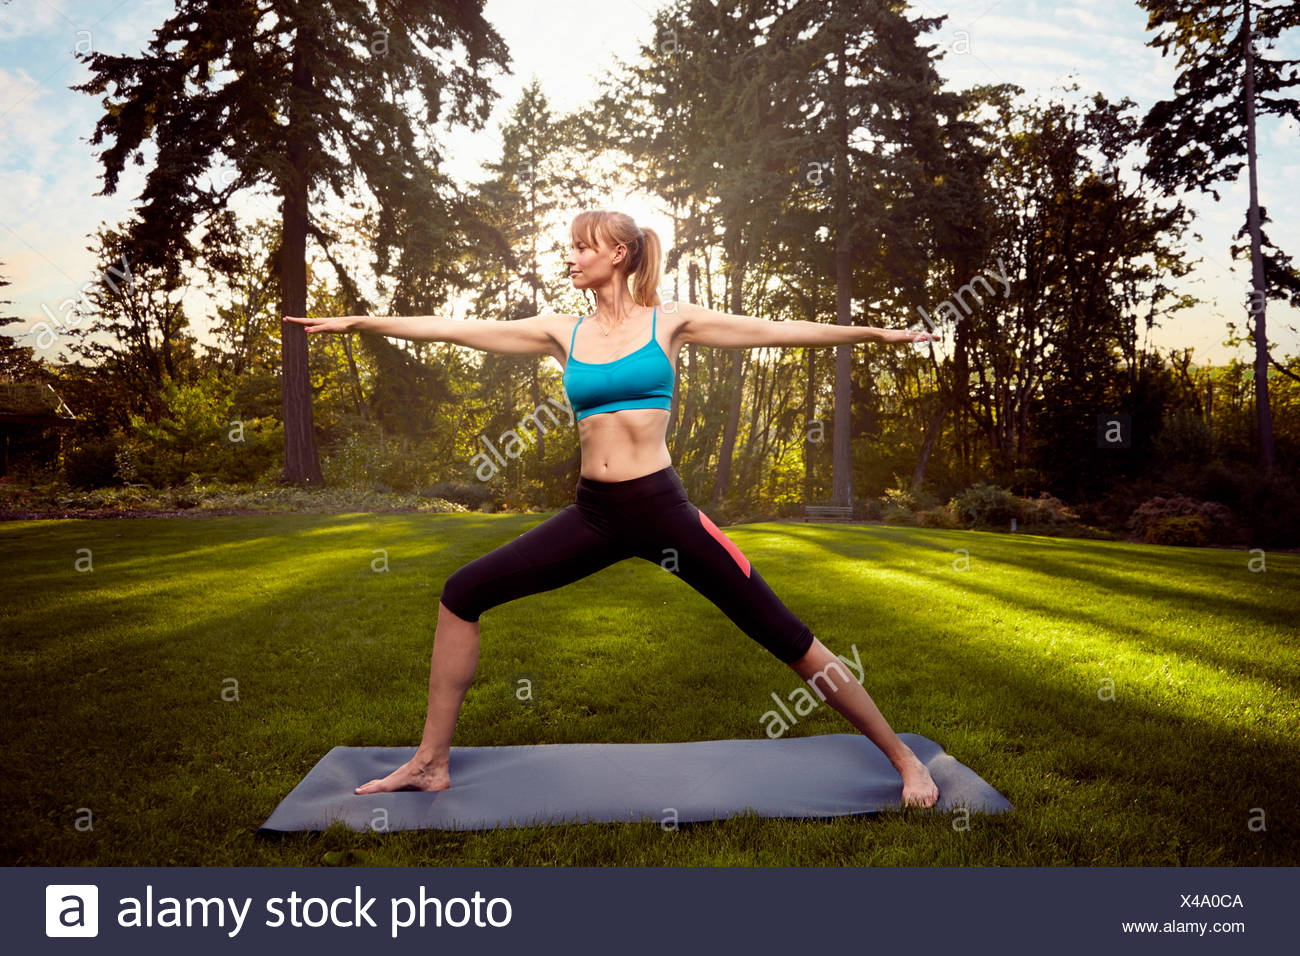 Mid adult woman practicing warrior pose in park - Stock Image